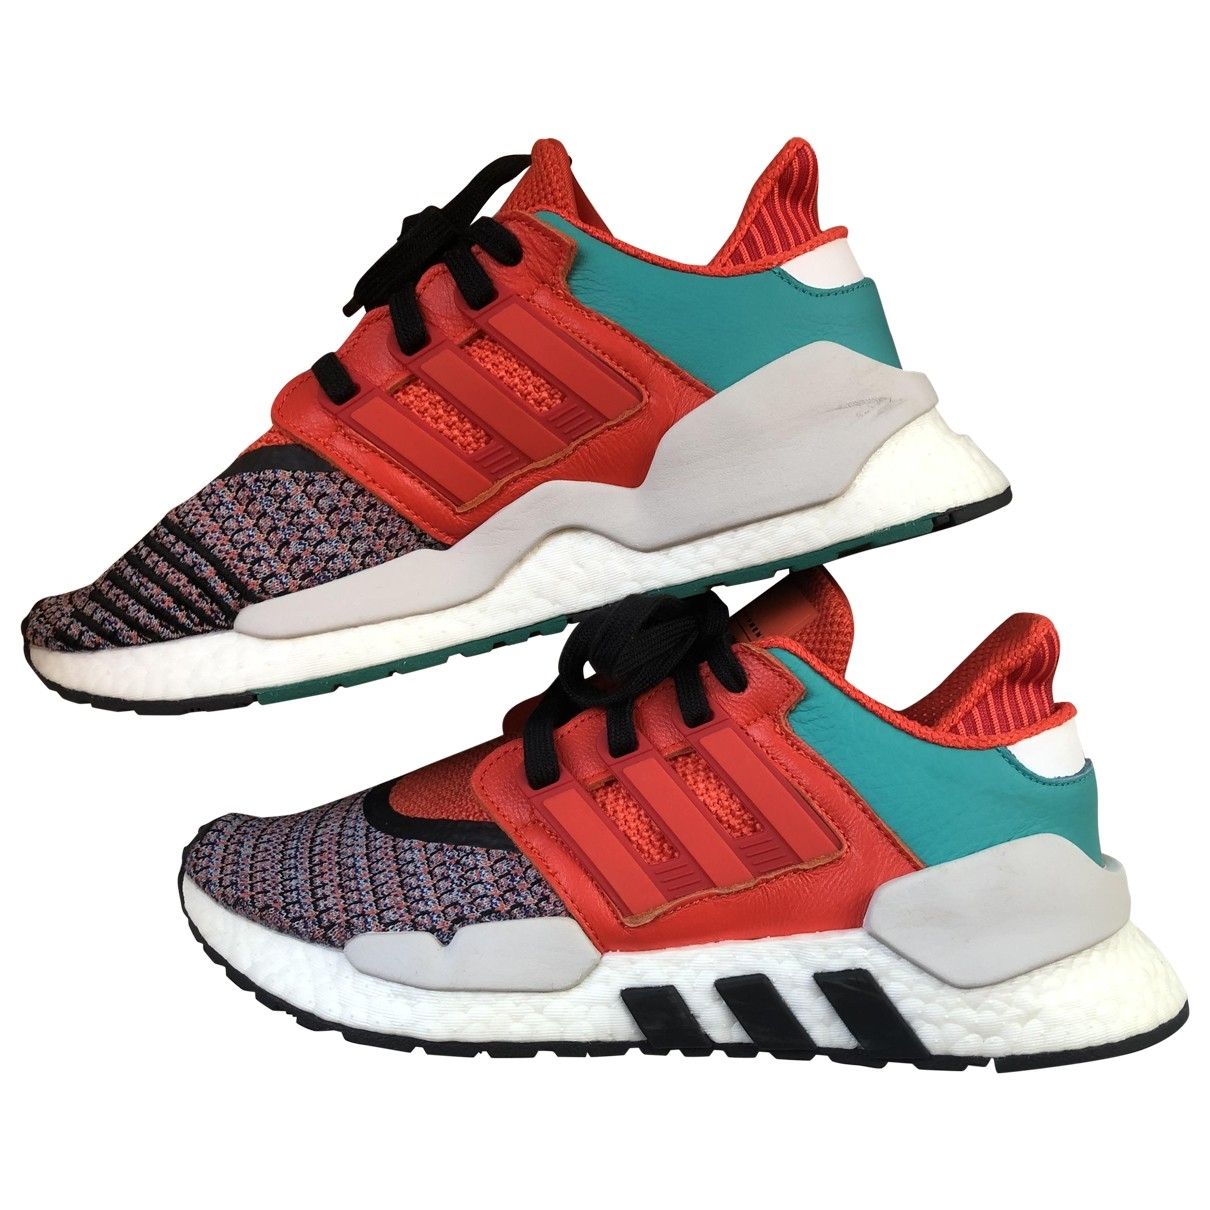 Adidas EQT Support Trainers for Women 7.5 US